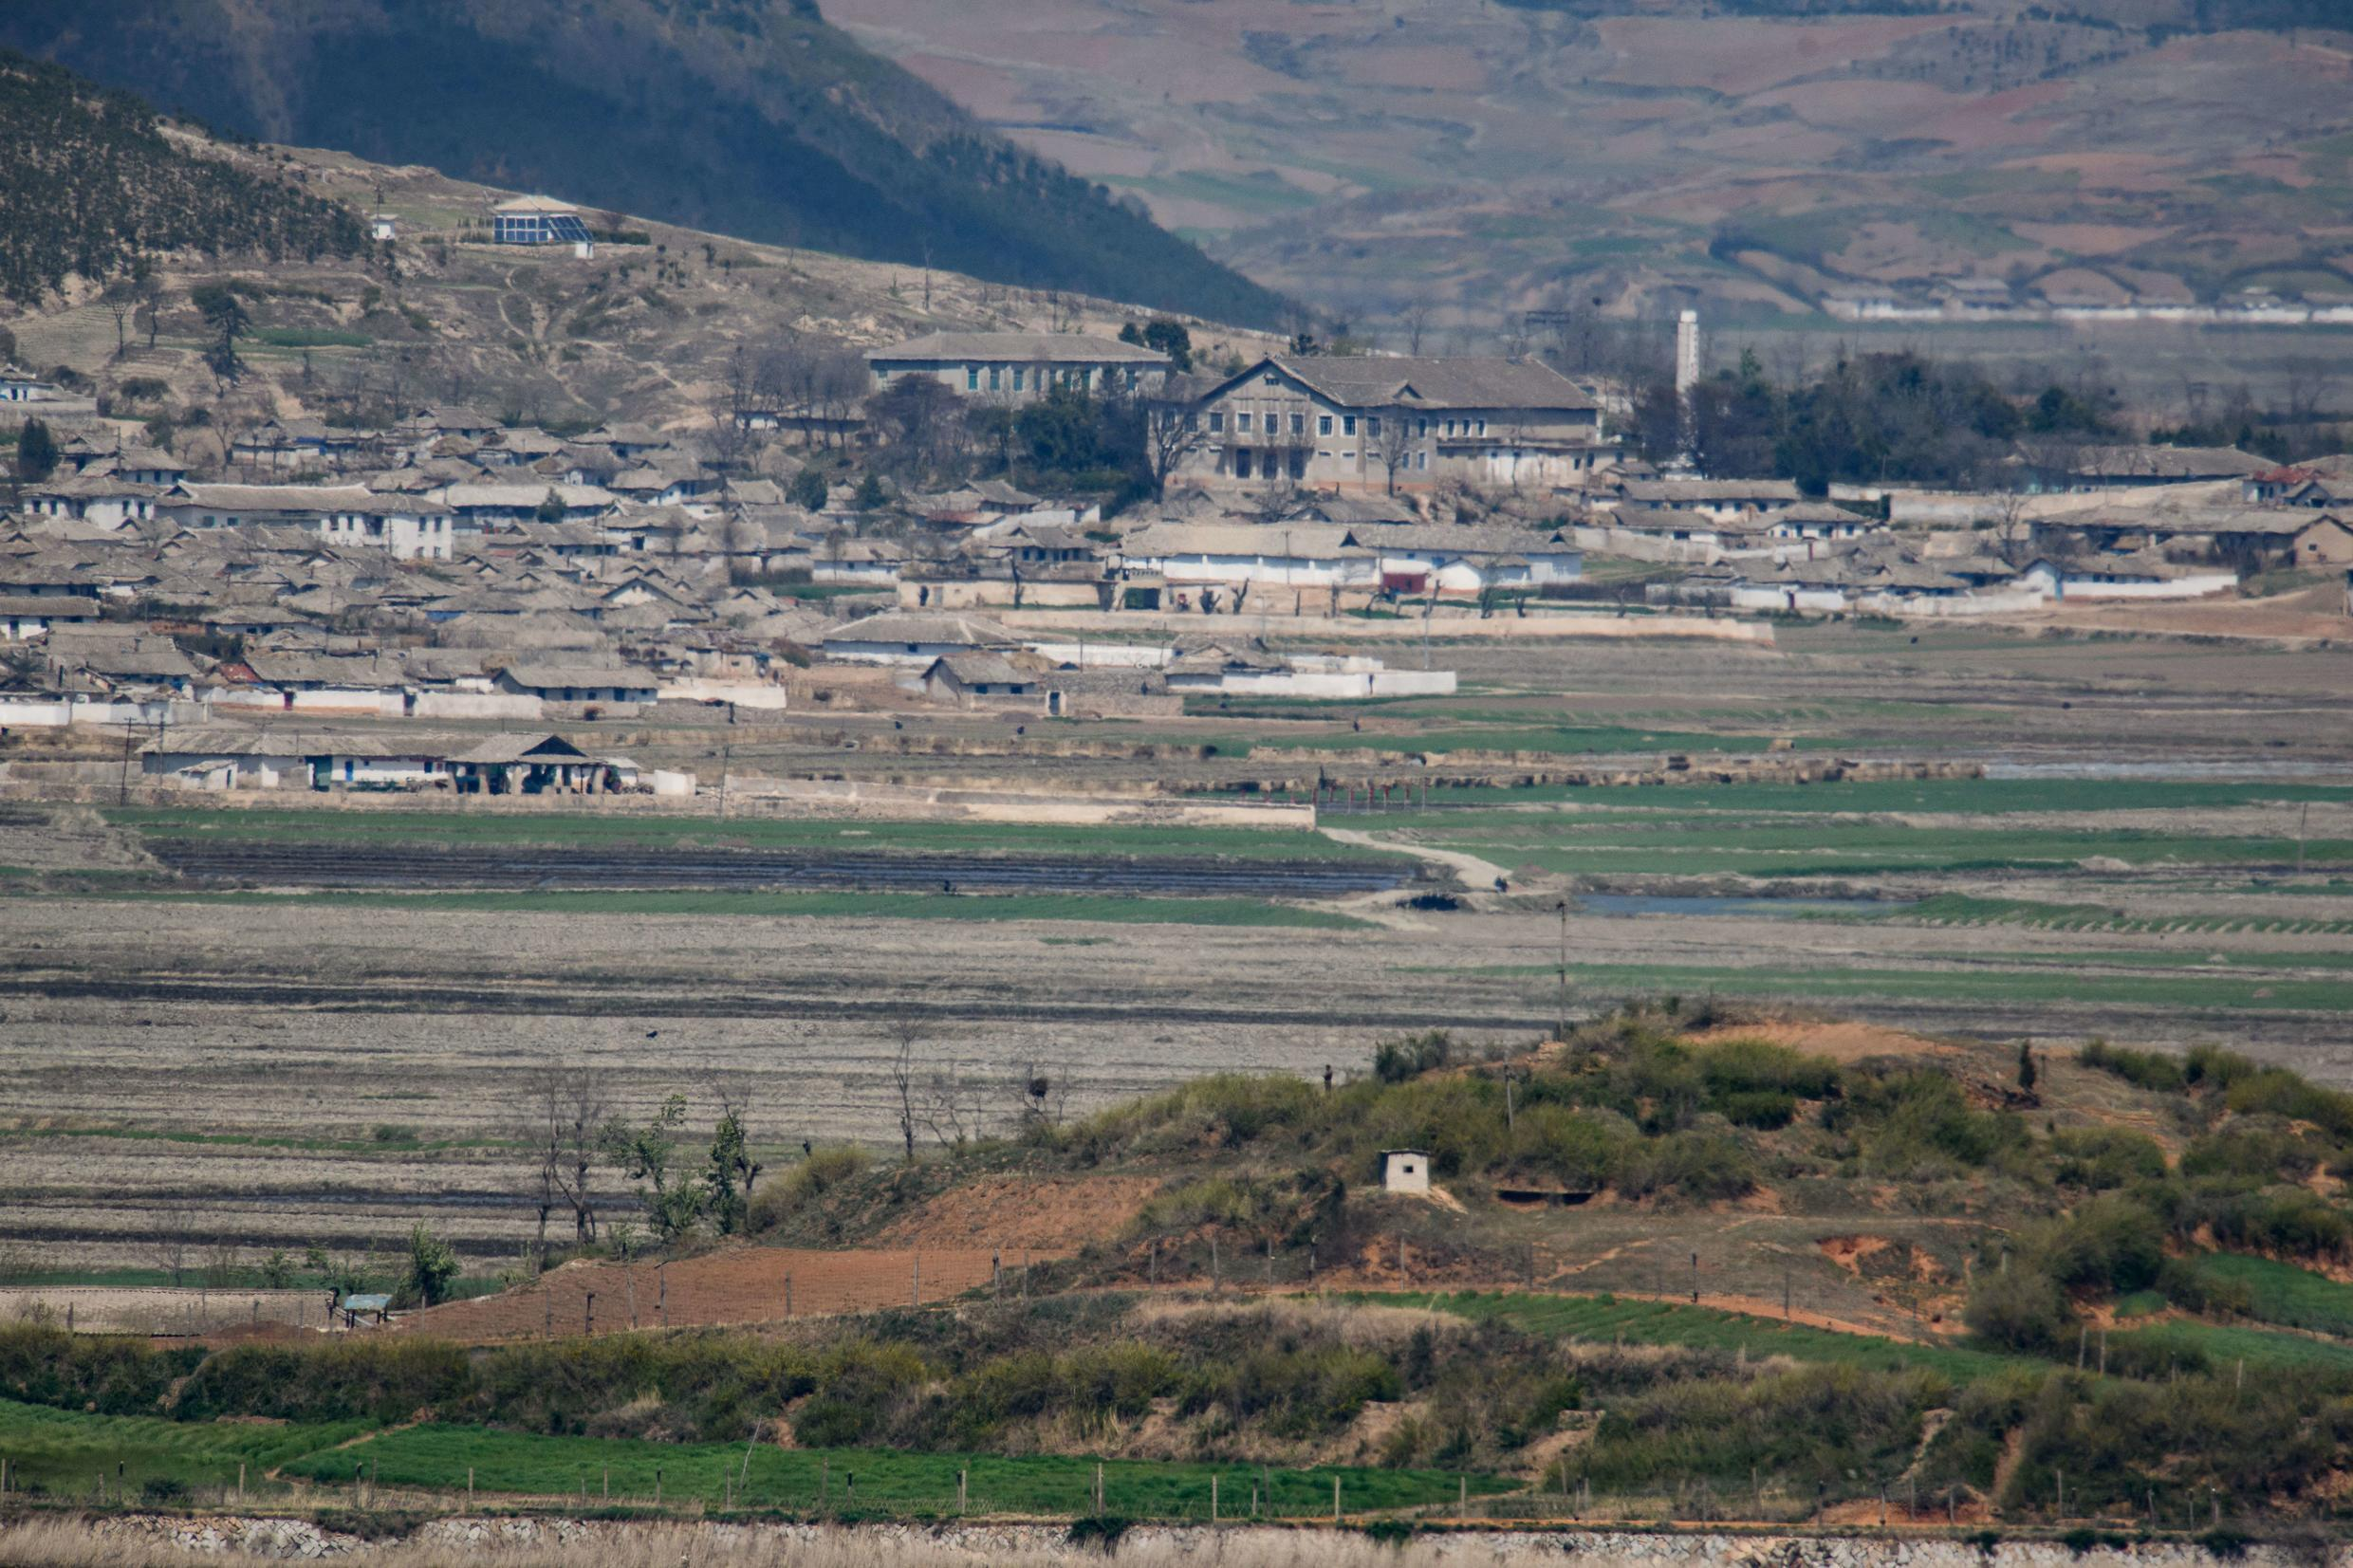 A general view of fields and buildings outside Kaesong in North Korea, seen across the Demilitarized Zone from the South Korean island of Ganghwa